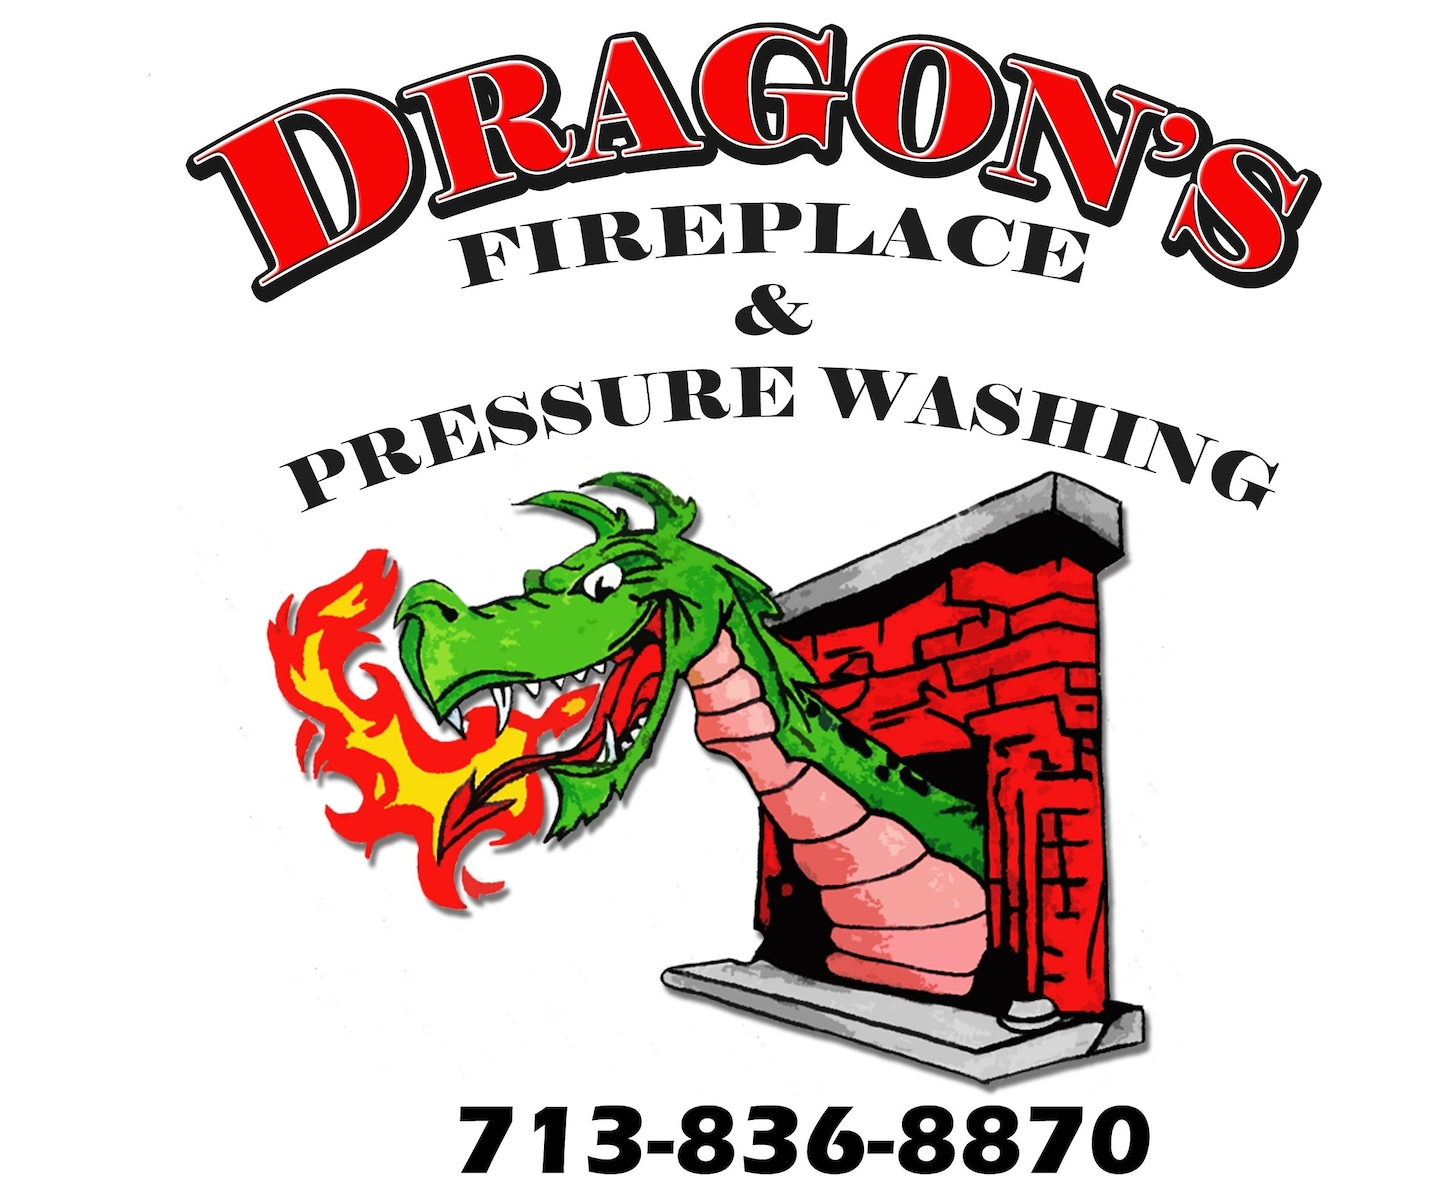 Dragon's Fireplace